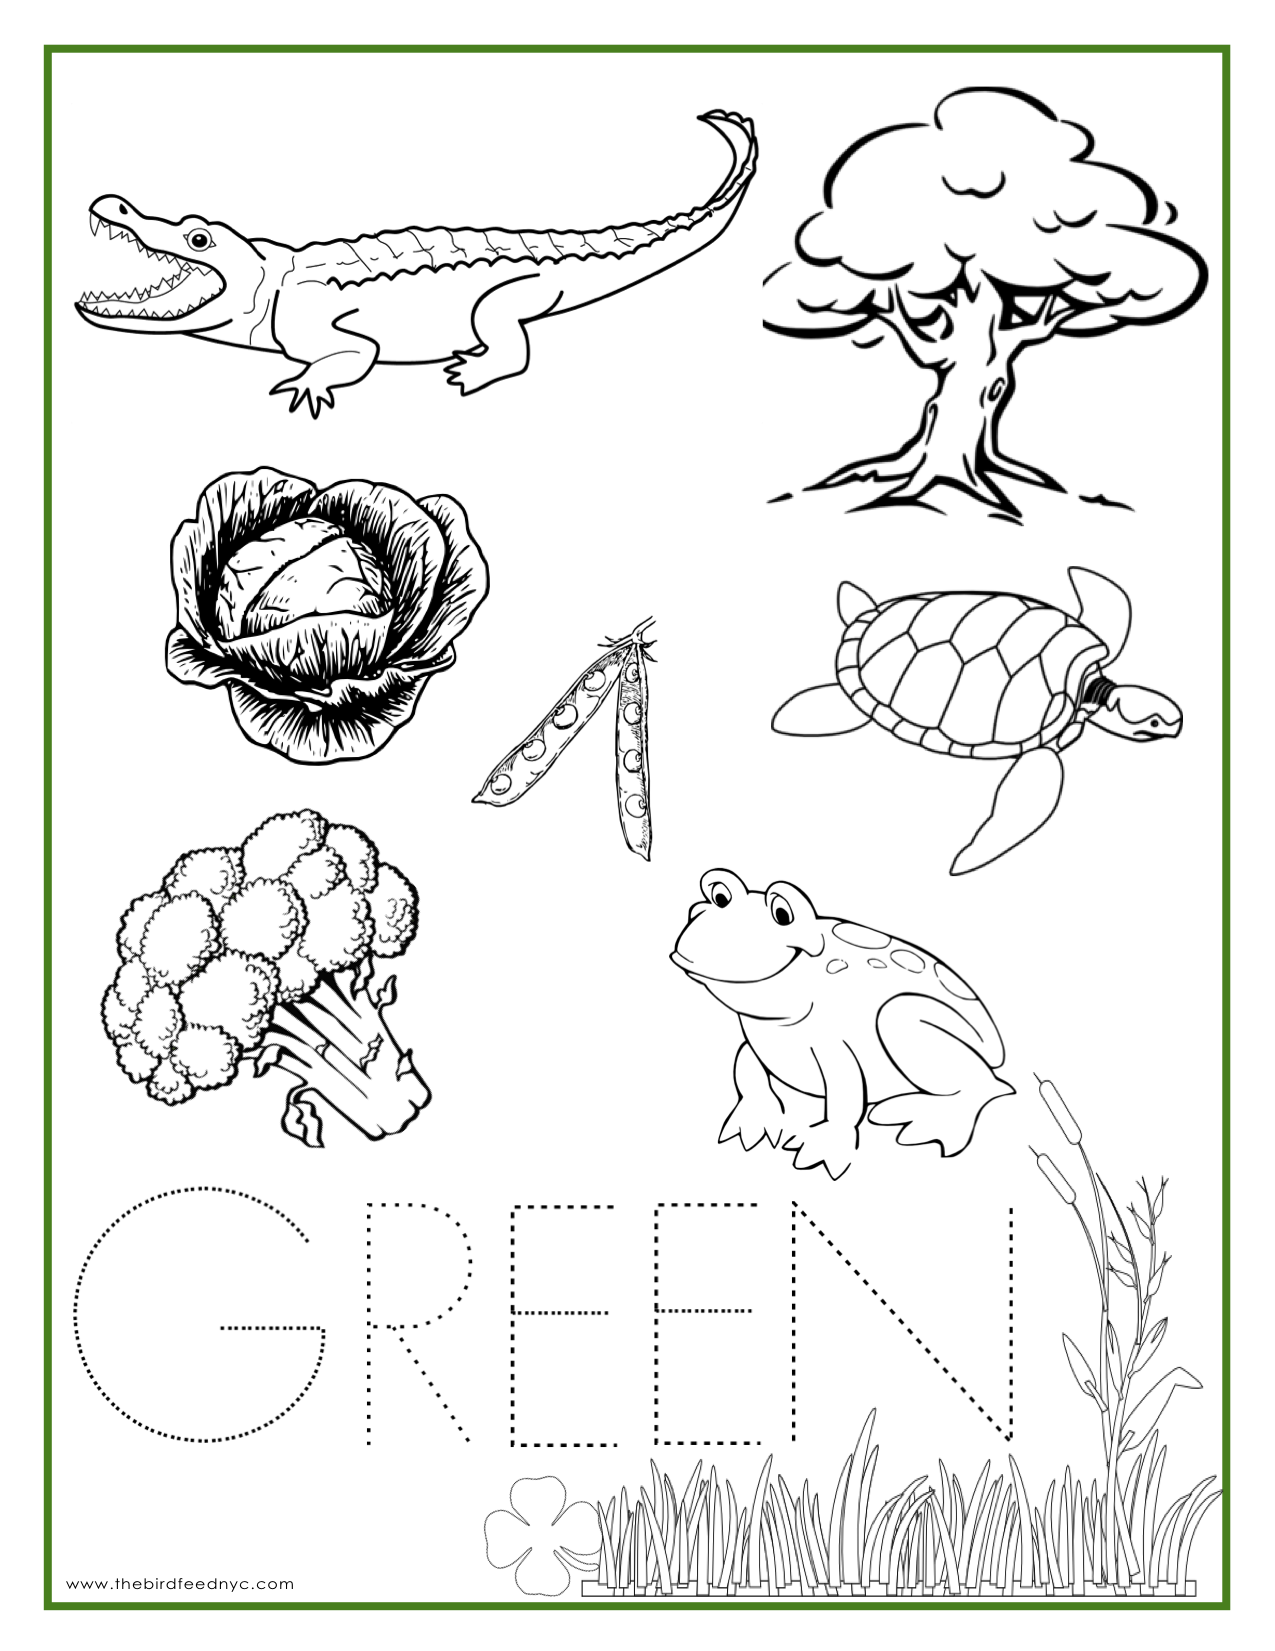 worksheet Color Brown Worksheets green color activity sheet activities pinterest sheet